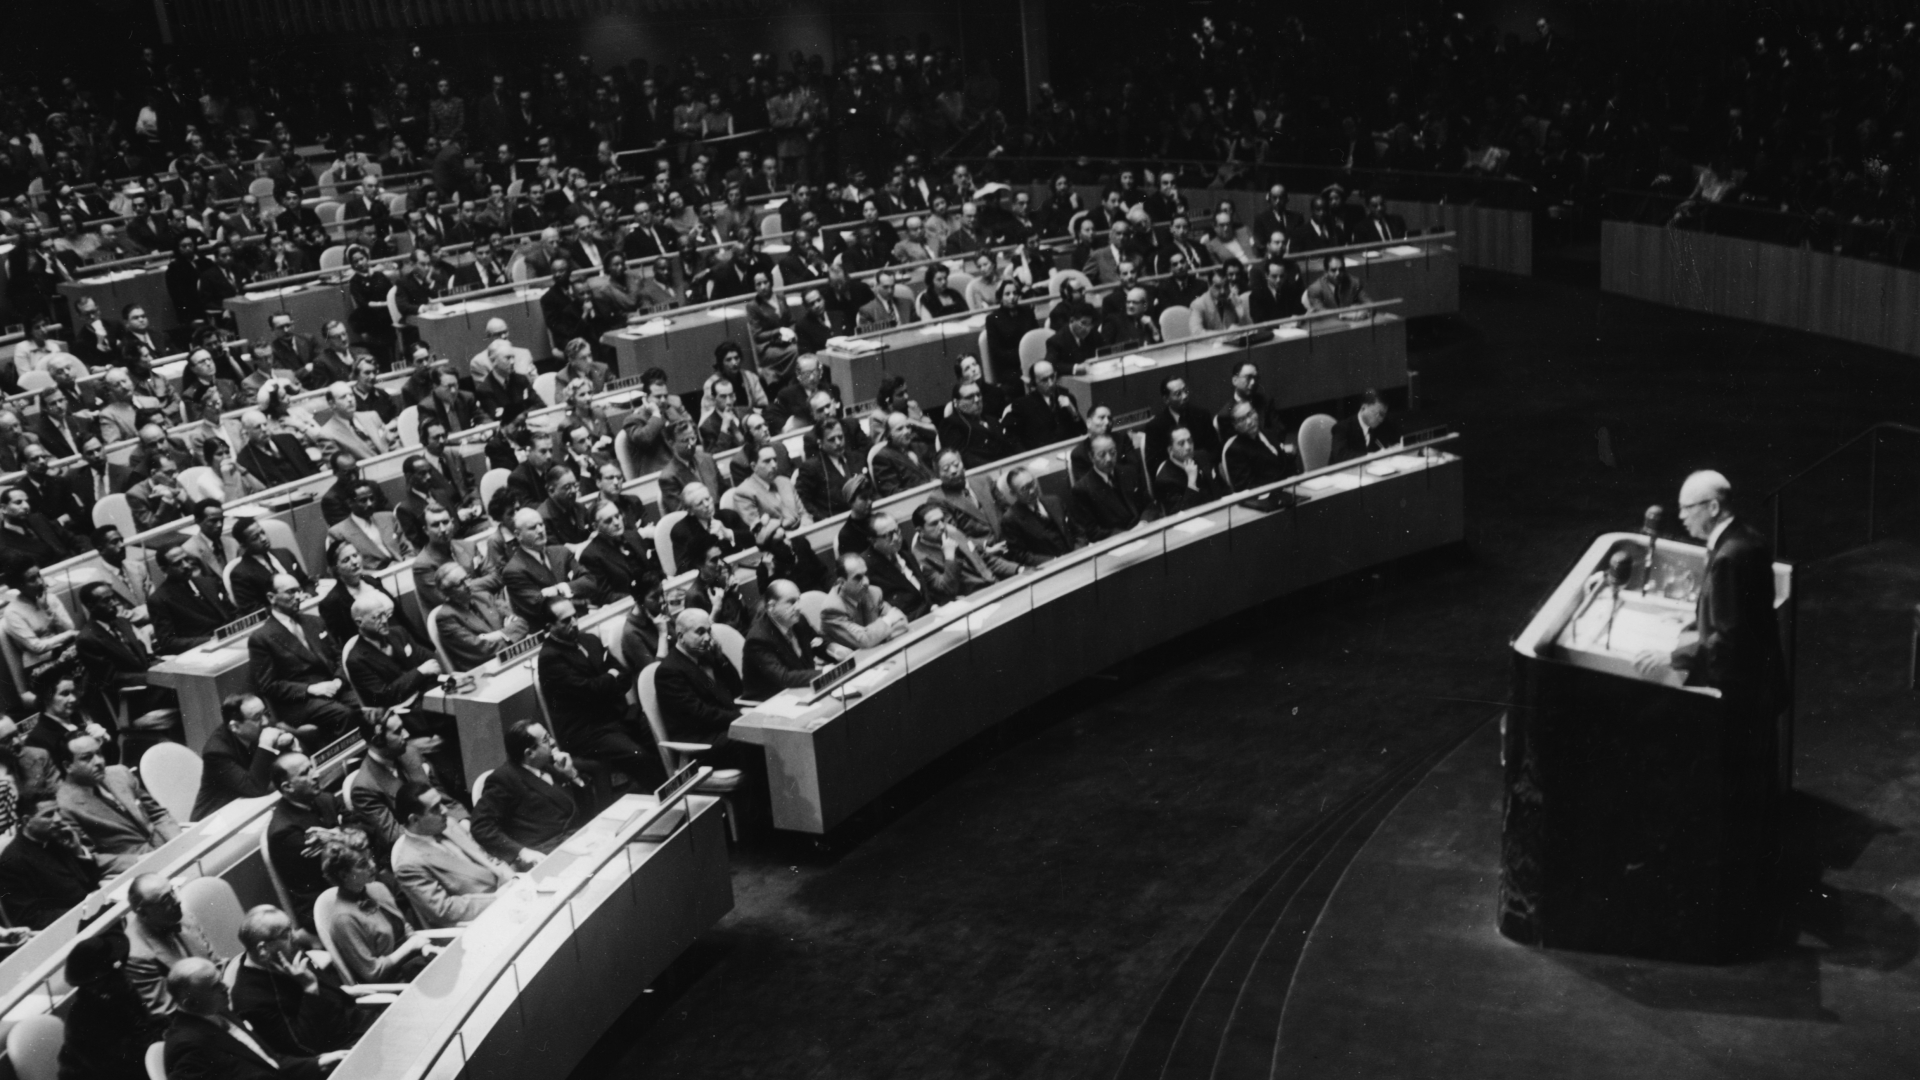 President Eisenhower addressing the United Nations concerning the Atom Bomb Plan, 1953. (Credit: Keystone/Hulton Archive/Getty Images)